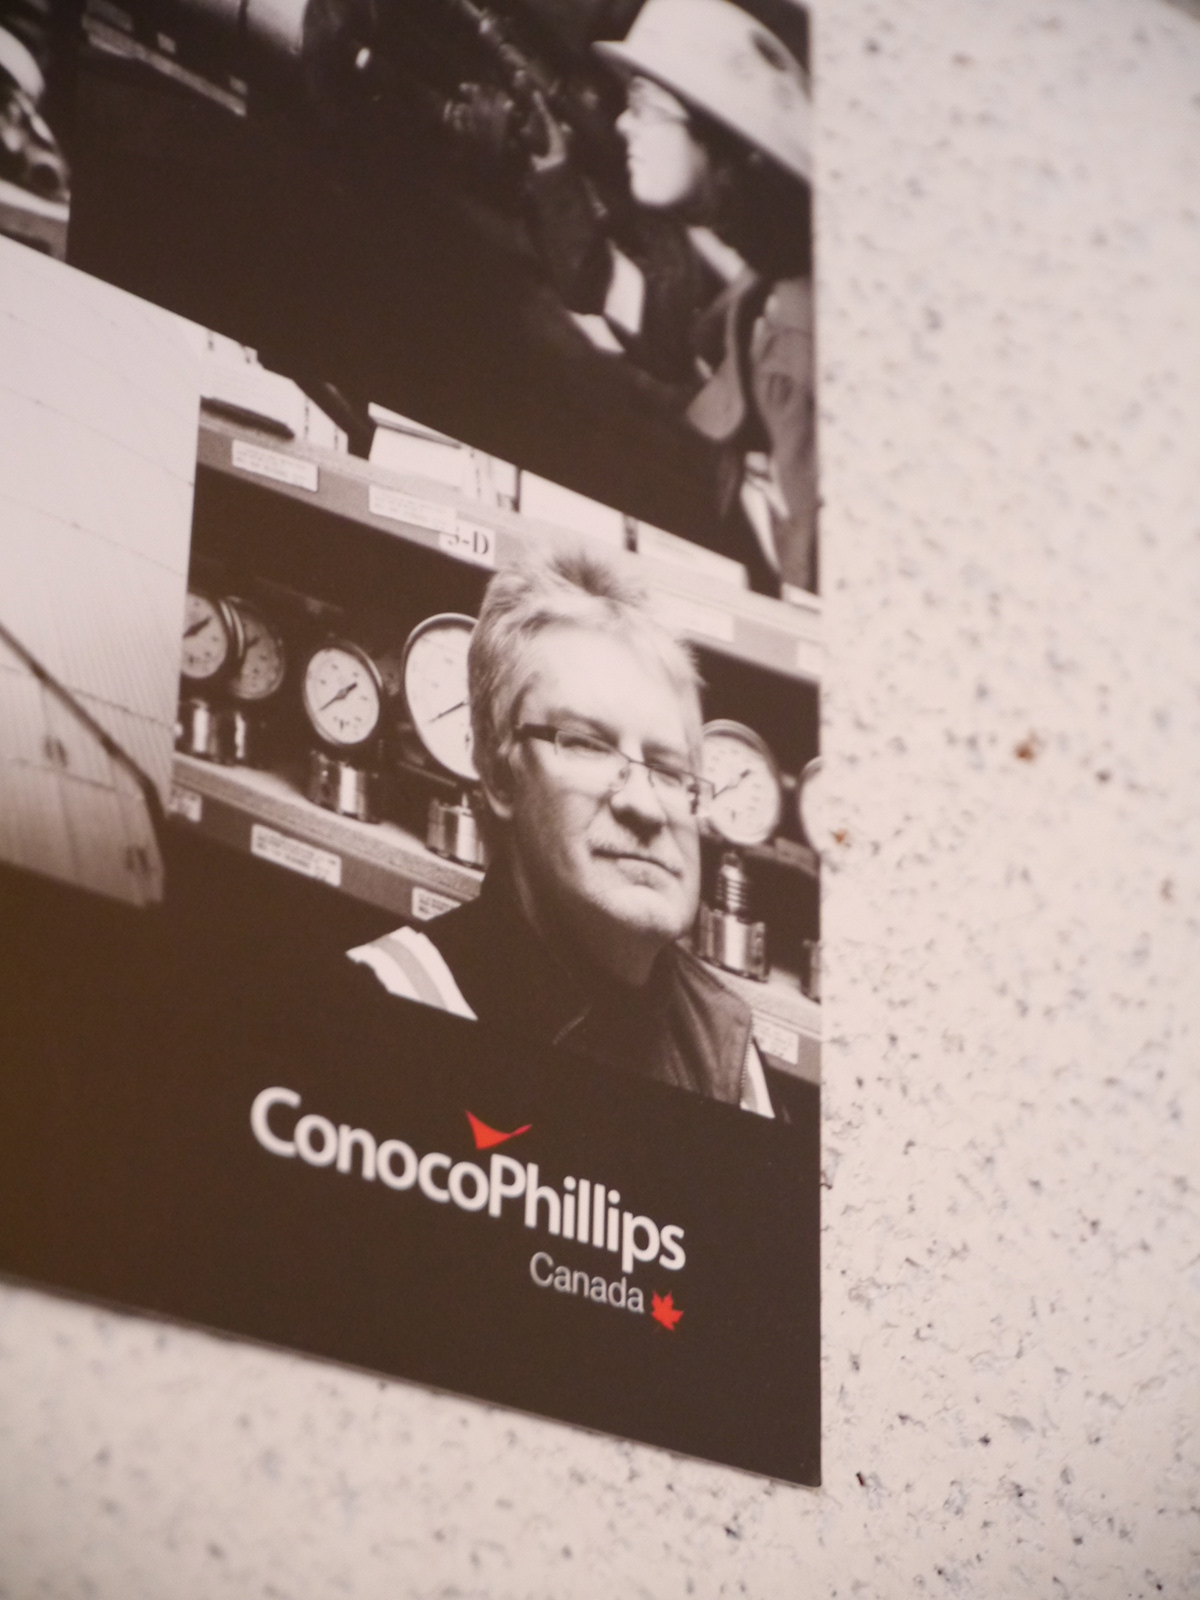 ConocoPhillips Recruitment Campaign